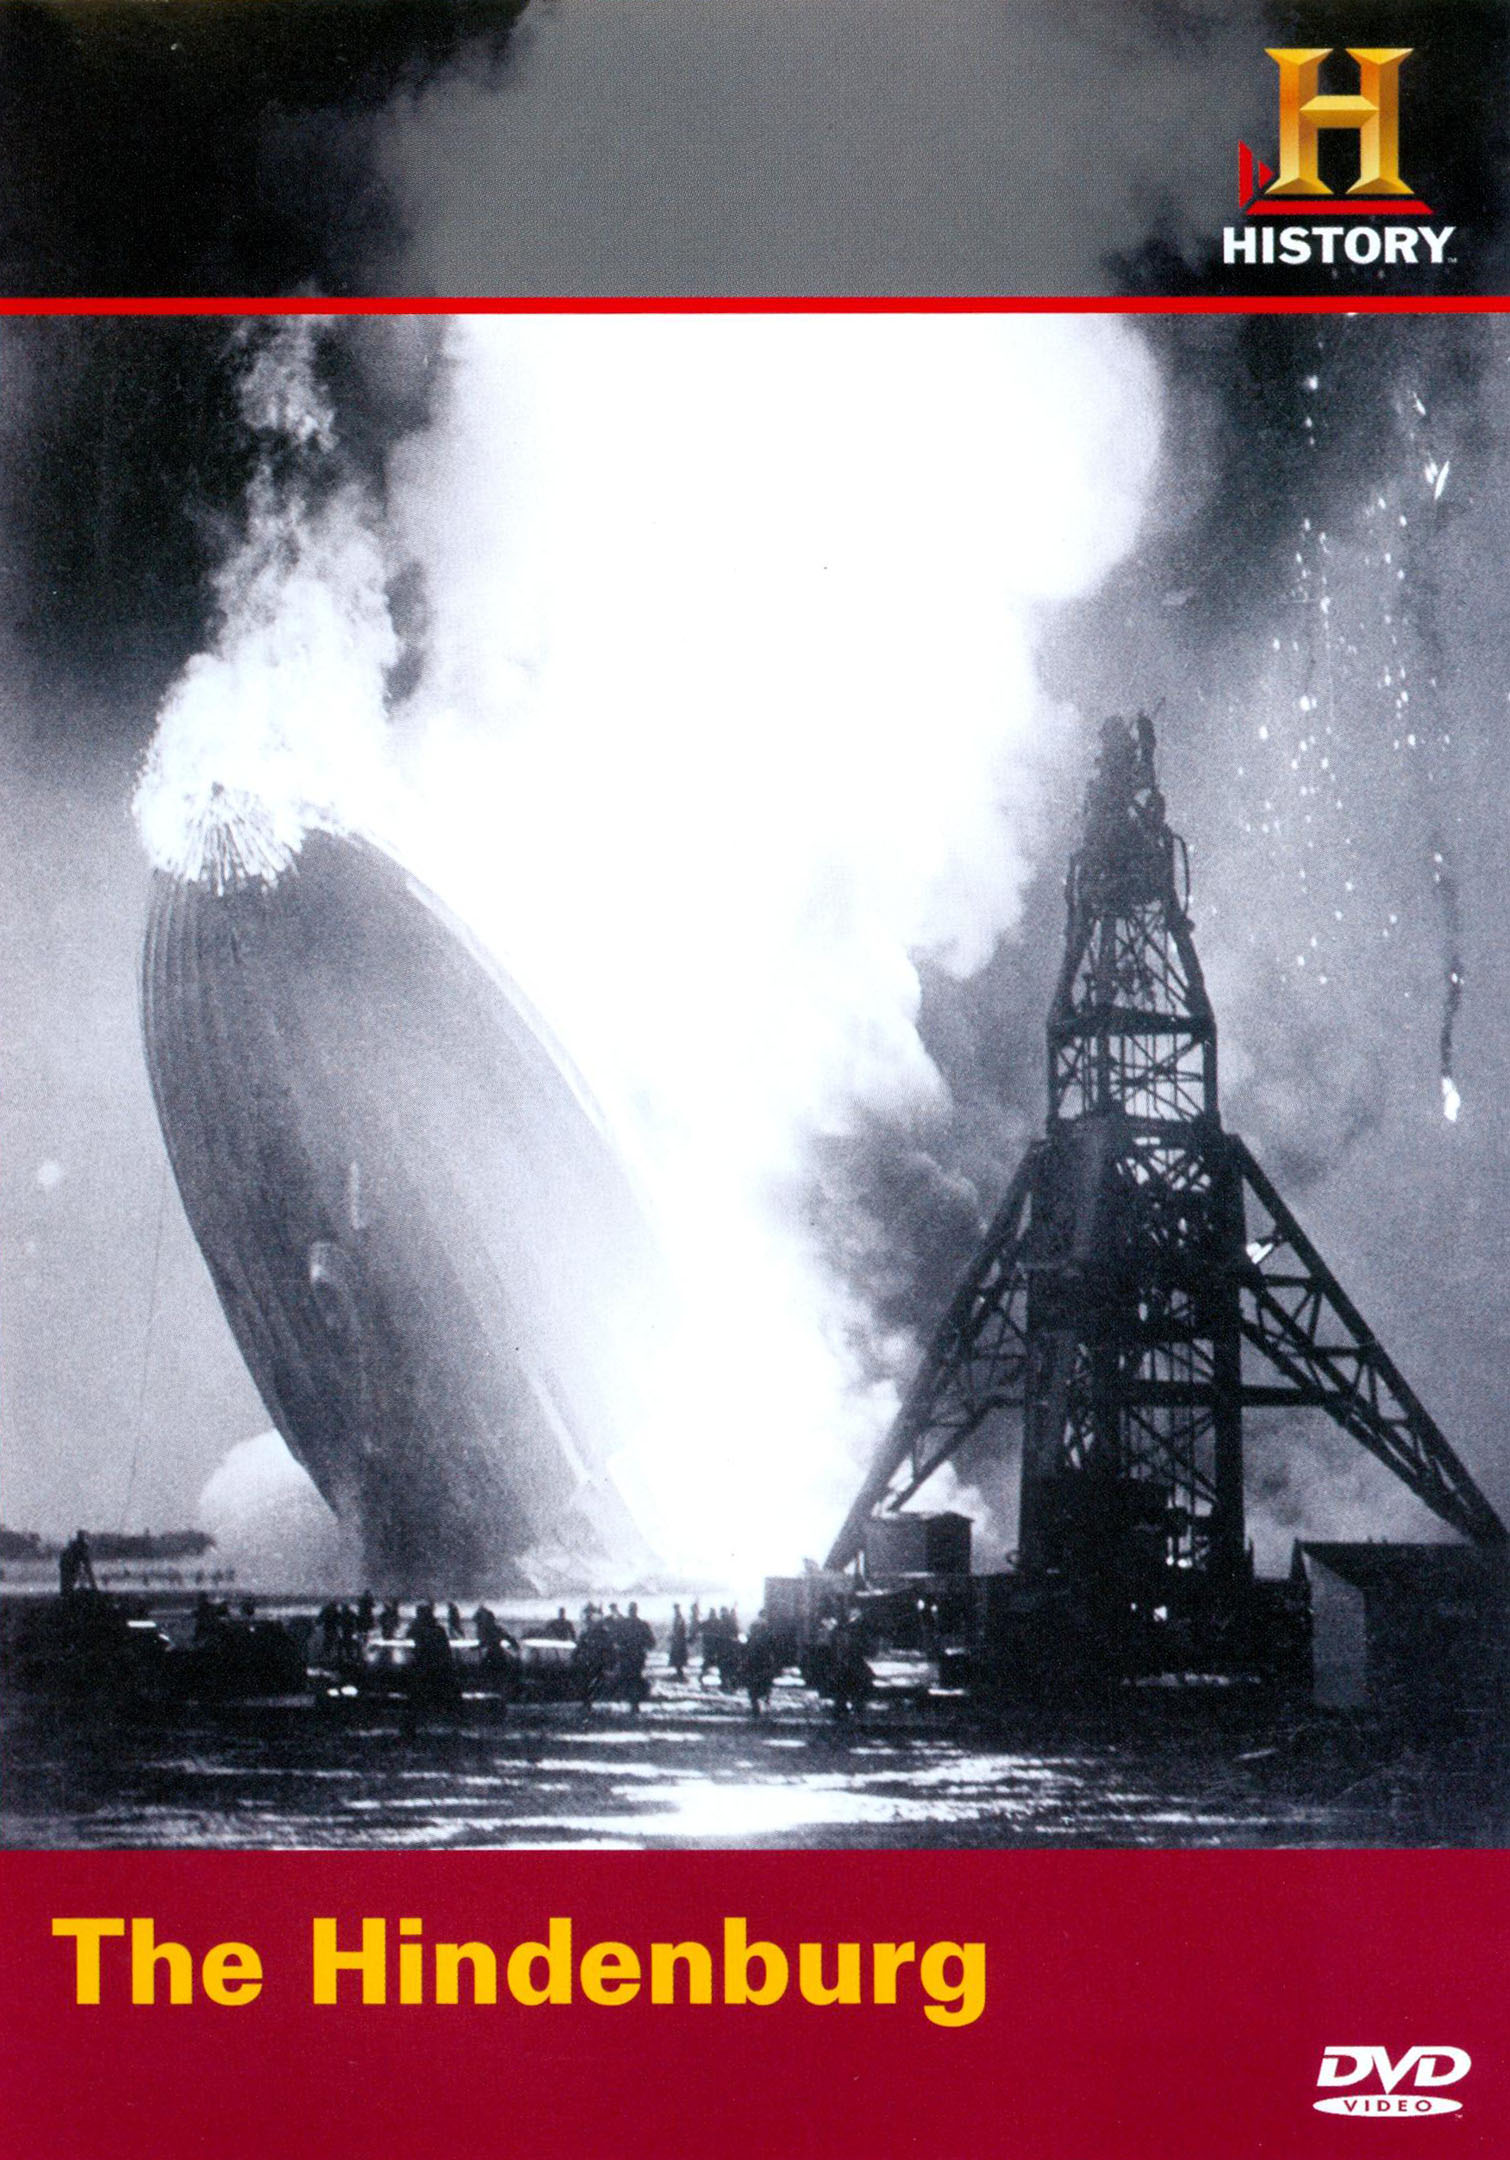 a history of the hindenburg disaster The hindenburg flew its first north american transatlantic flight in may 1937, but during its landing on may 6, 1937, the airship burst into flames and crashed to the ground in lakehurst, new jersey check out these photos to explore the history of the hindenburg, including its fiery demise.